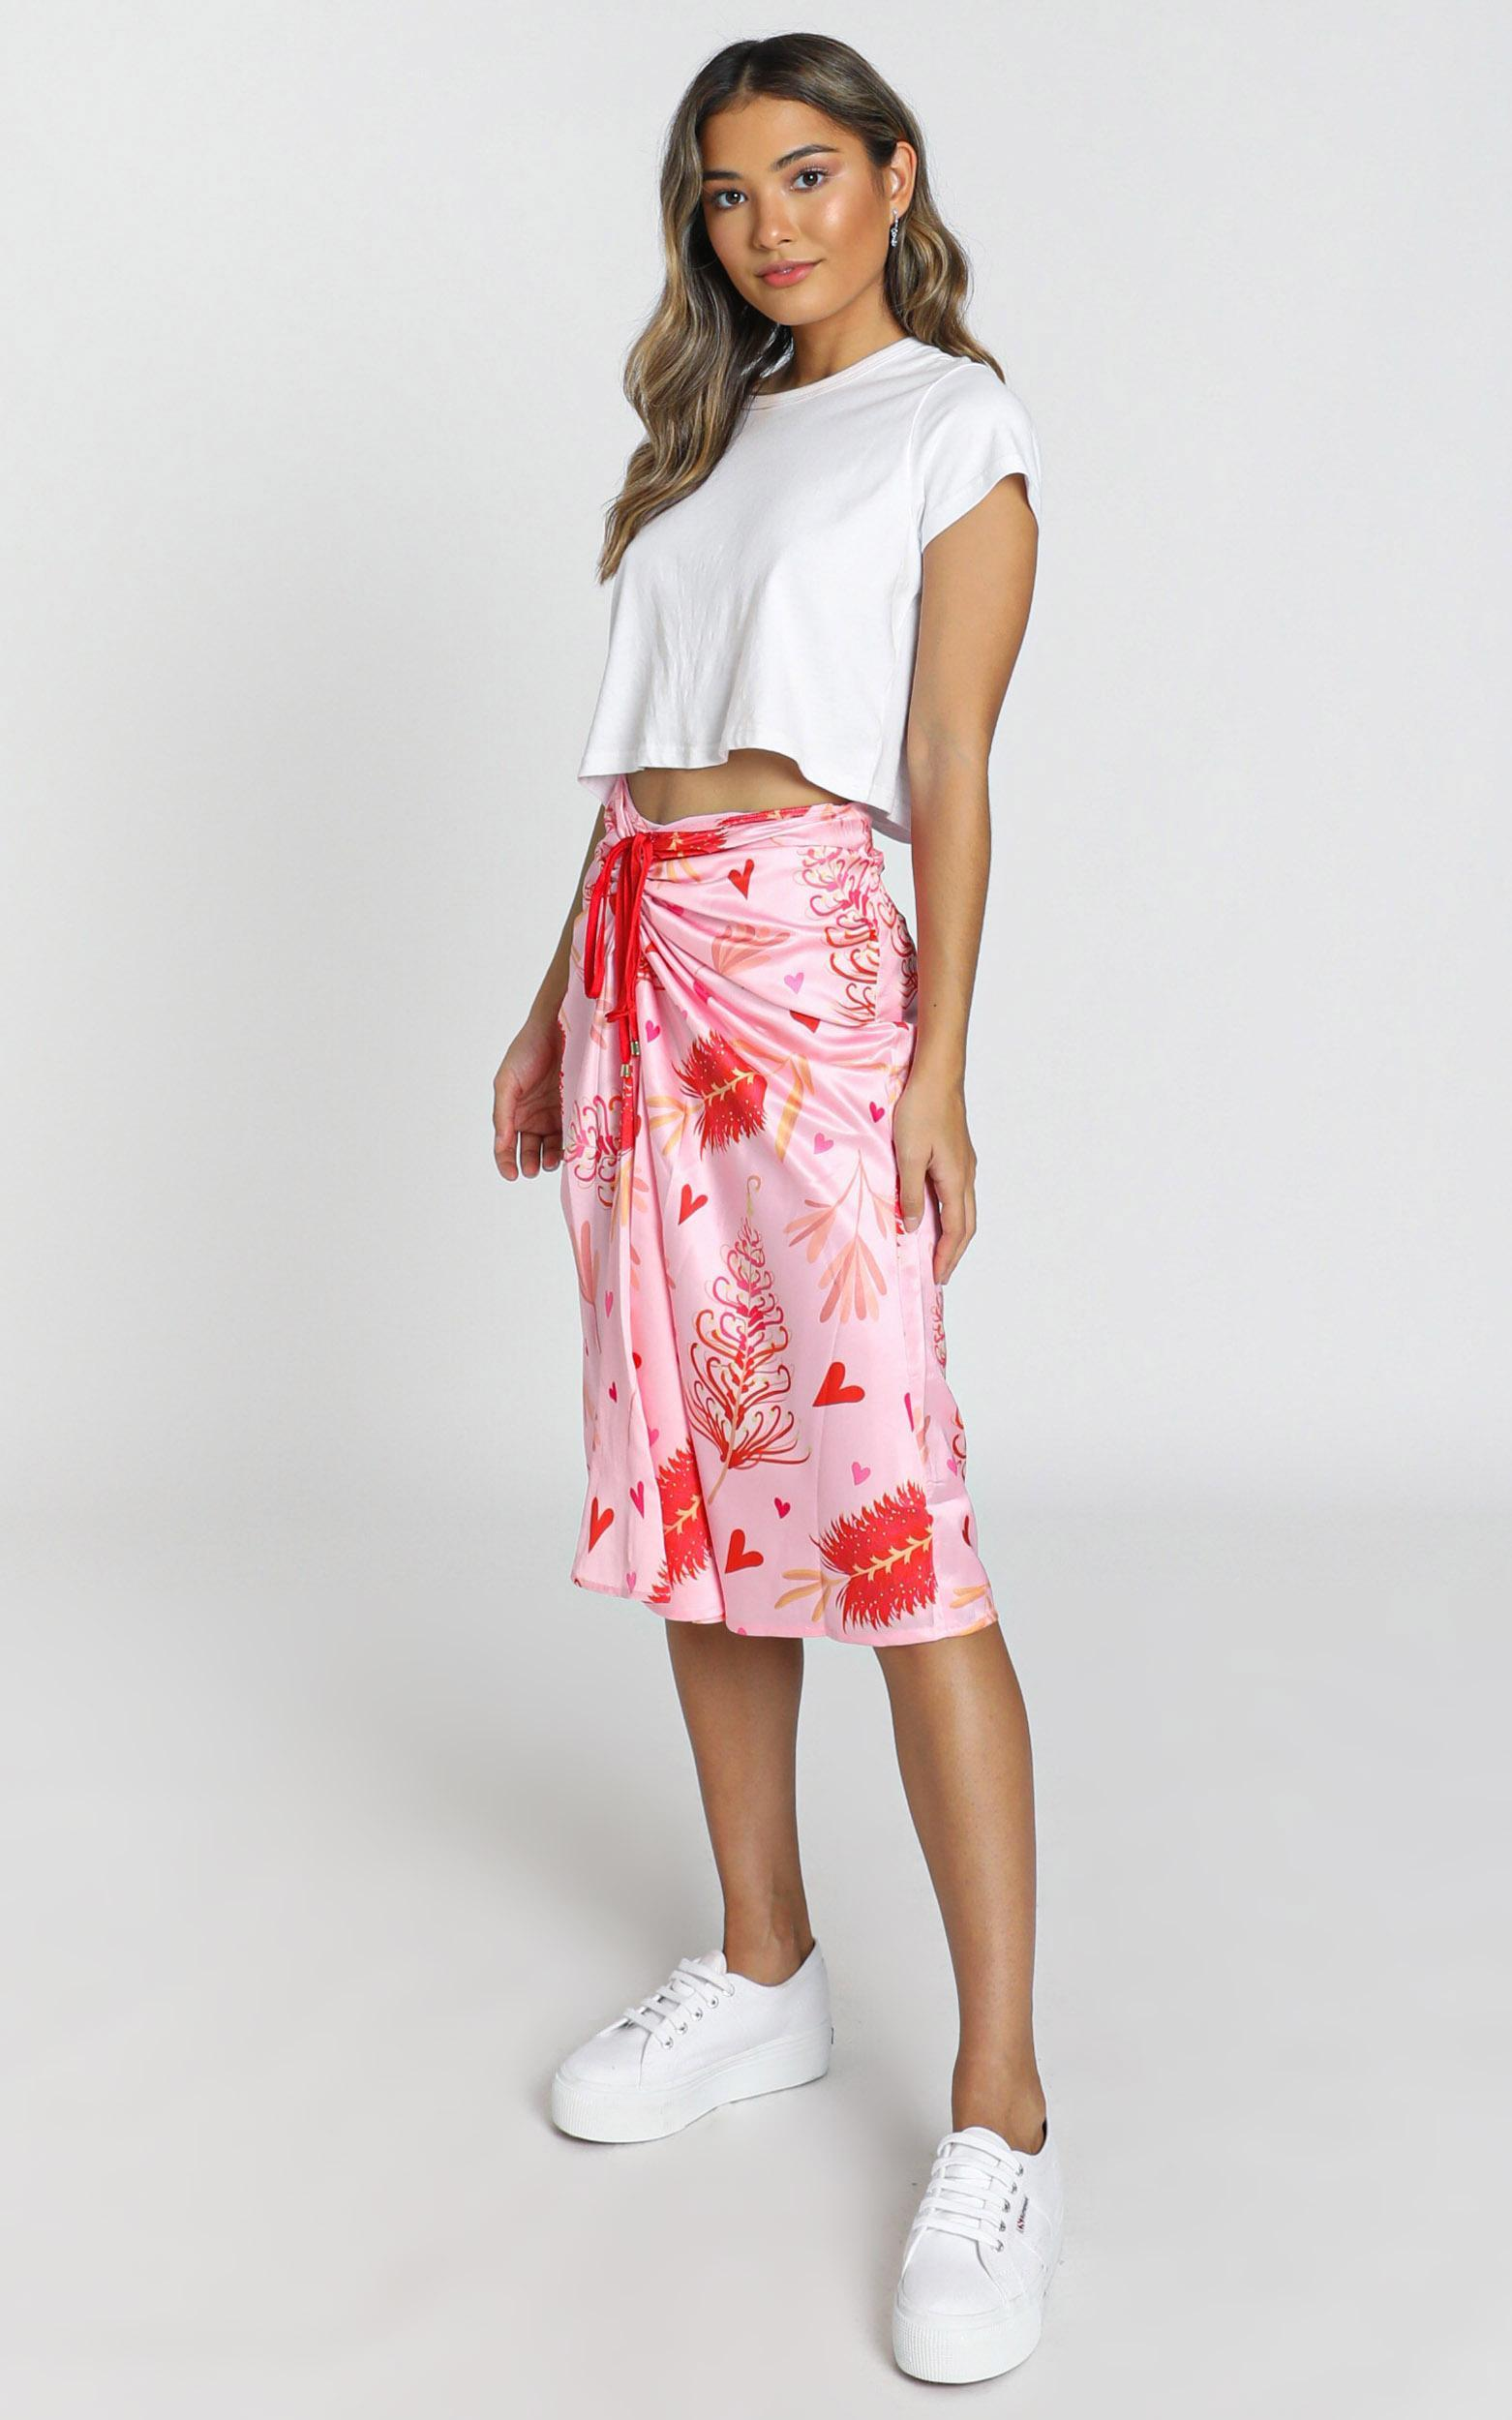 ZYA The Label - Myrtle Magic Skirt in pink print, PNK2, hi-res image number null